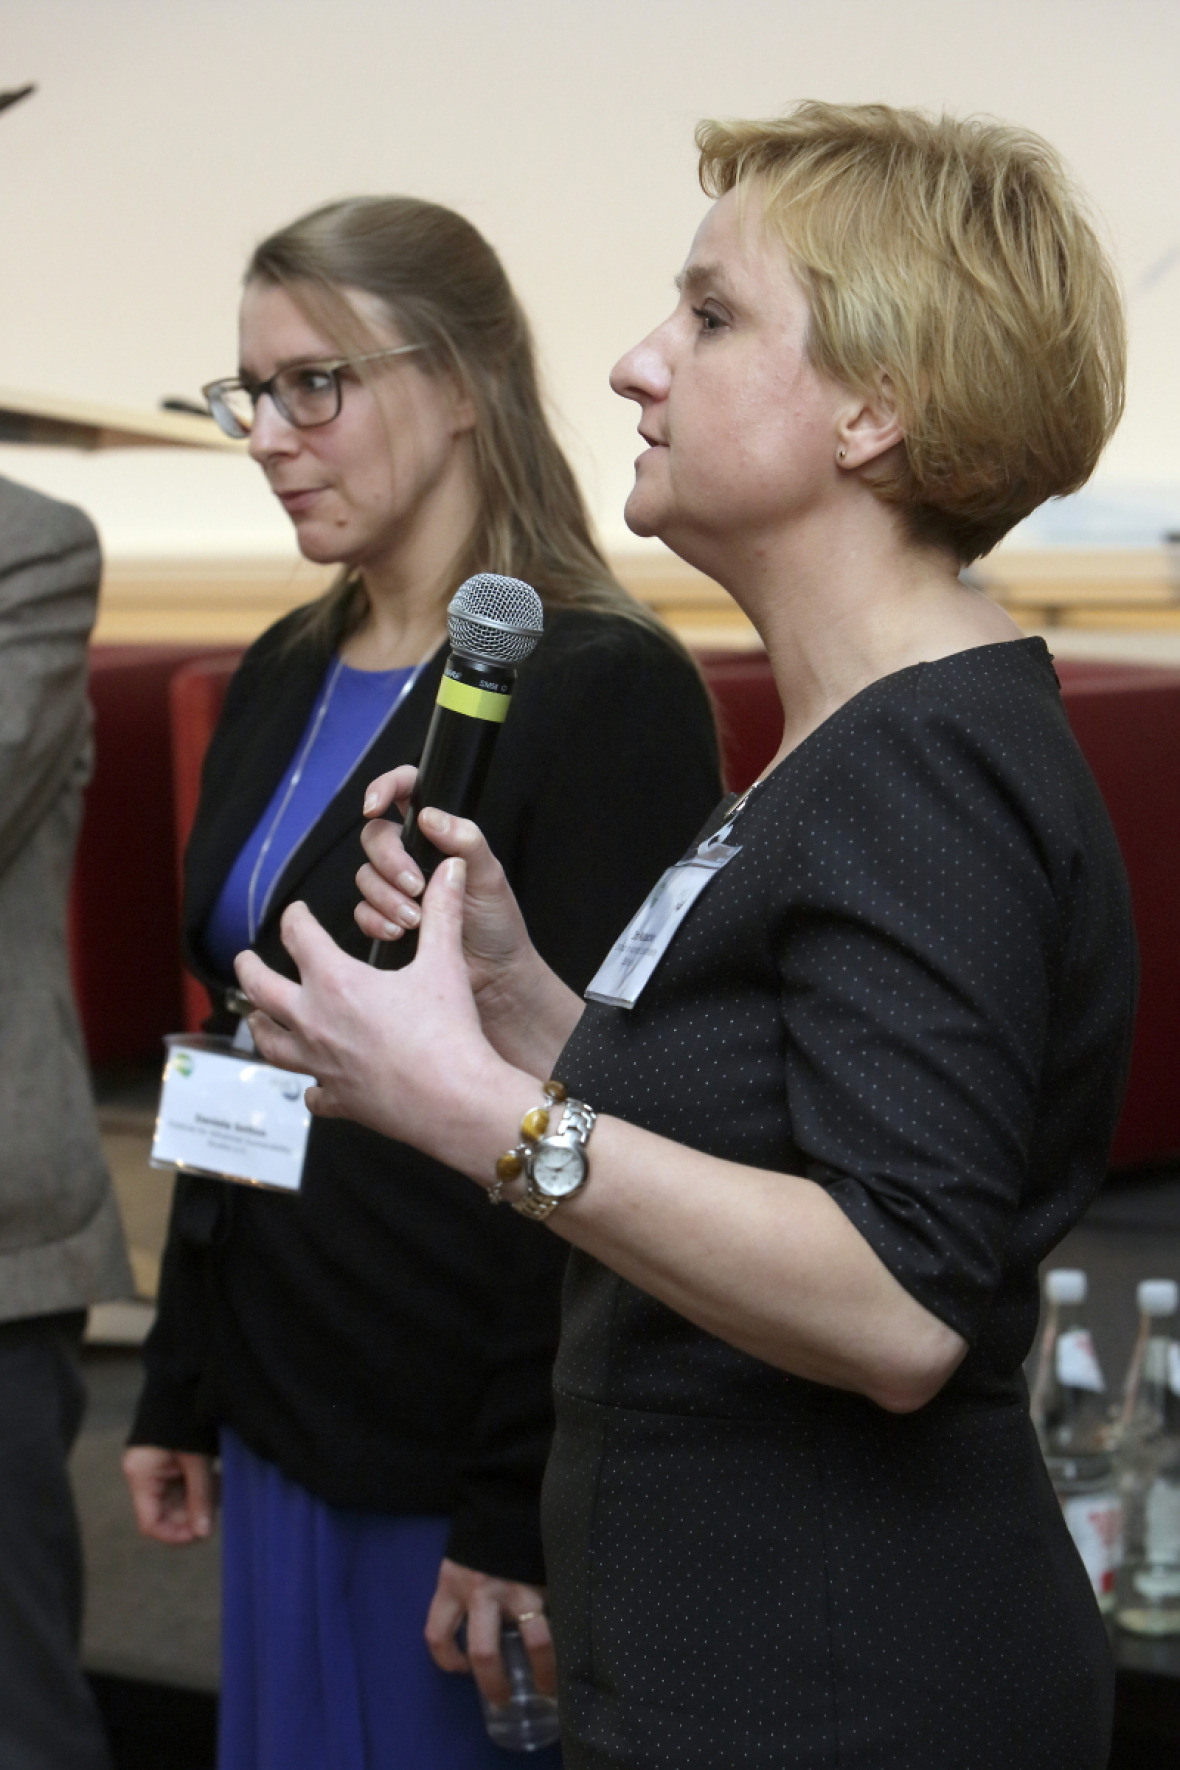 Daniela Setton and Ira Matuschke (both IASS)